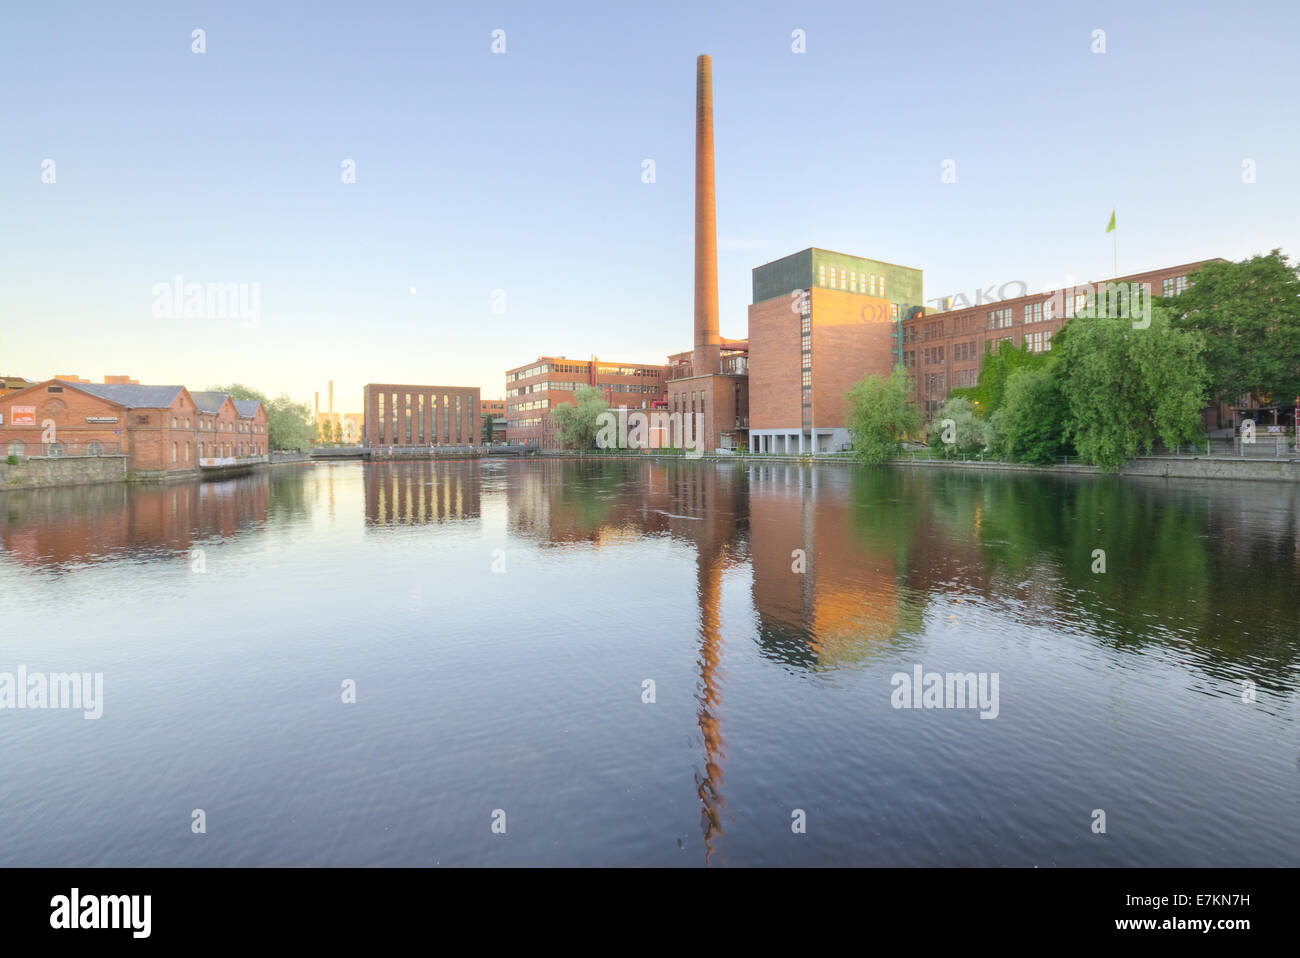 Landscape of an old brick factory and lake reflection at dusk in Tampere Finland - Stock Image